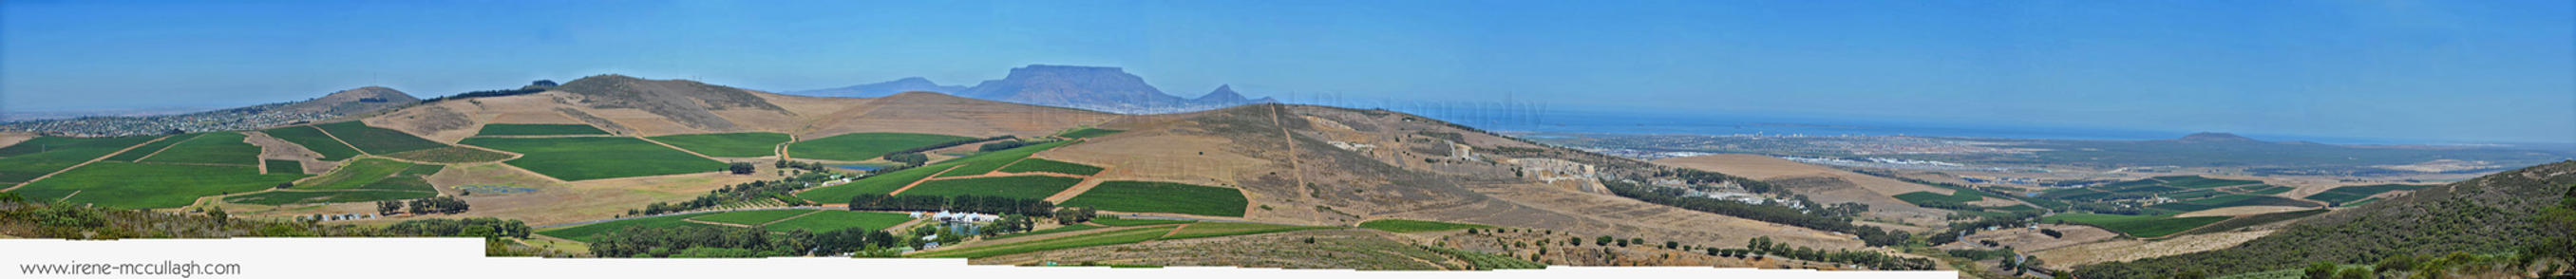 Durbanville Hills by substar